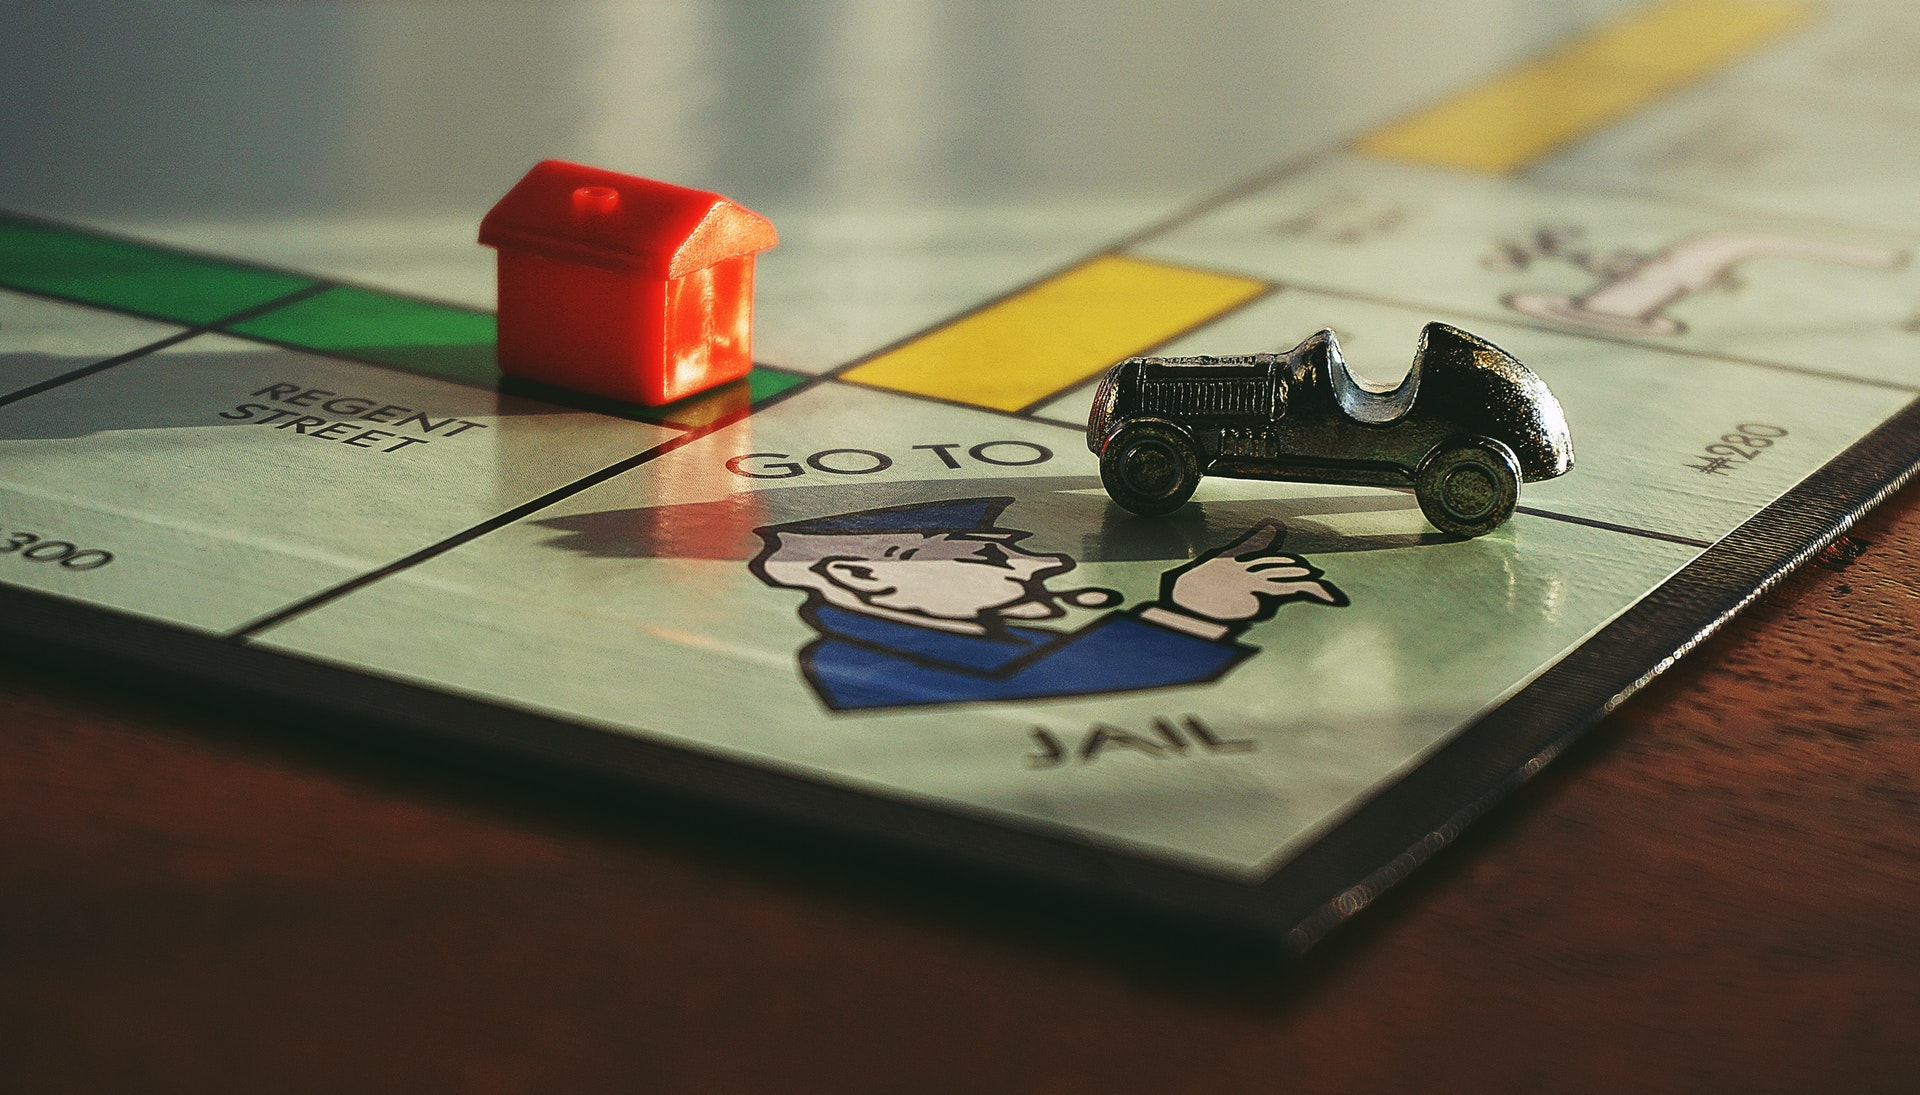 Go to jail on gameboard